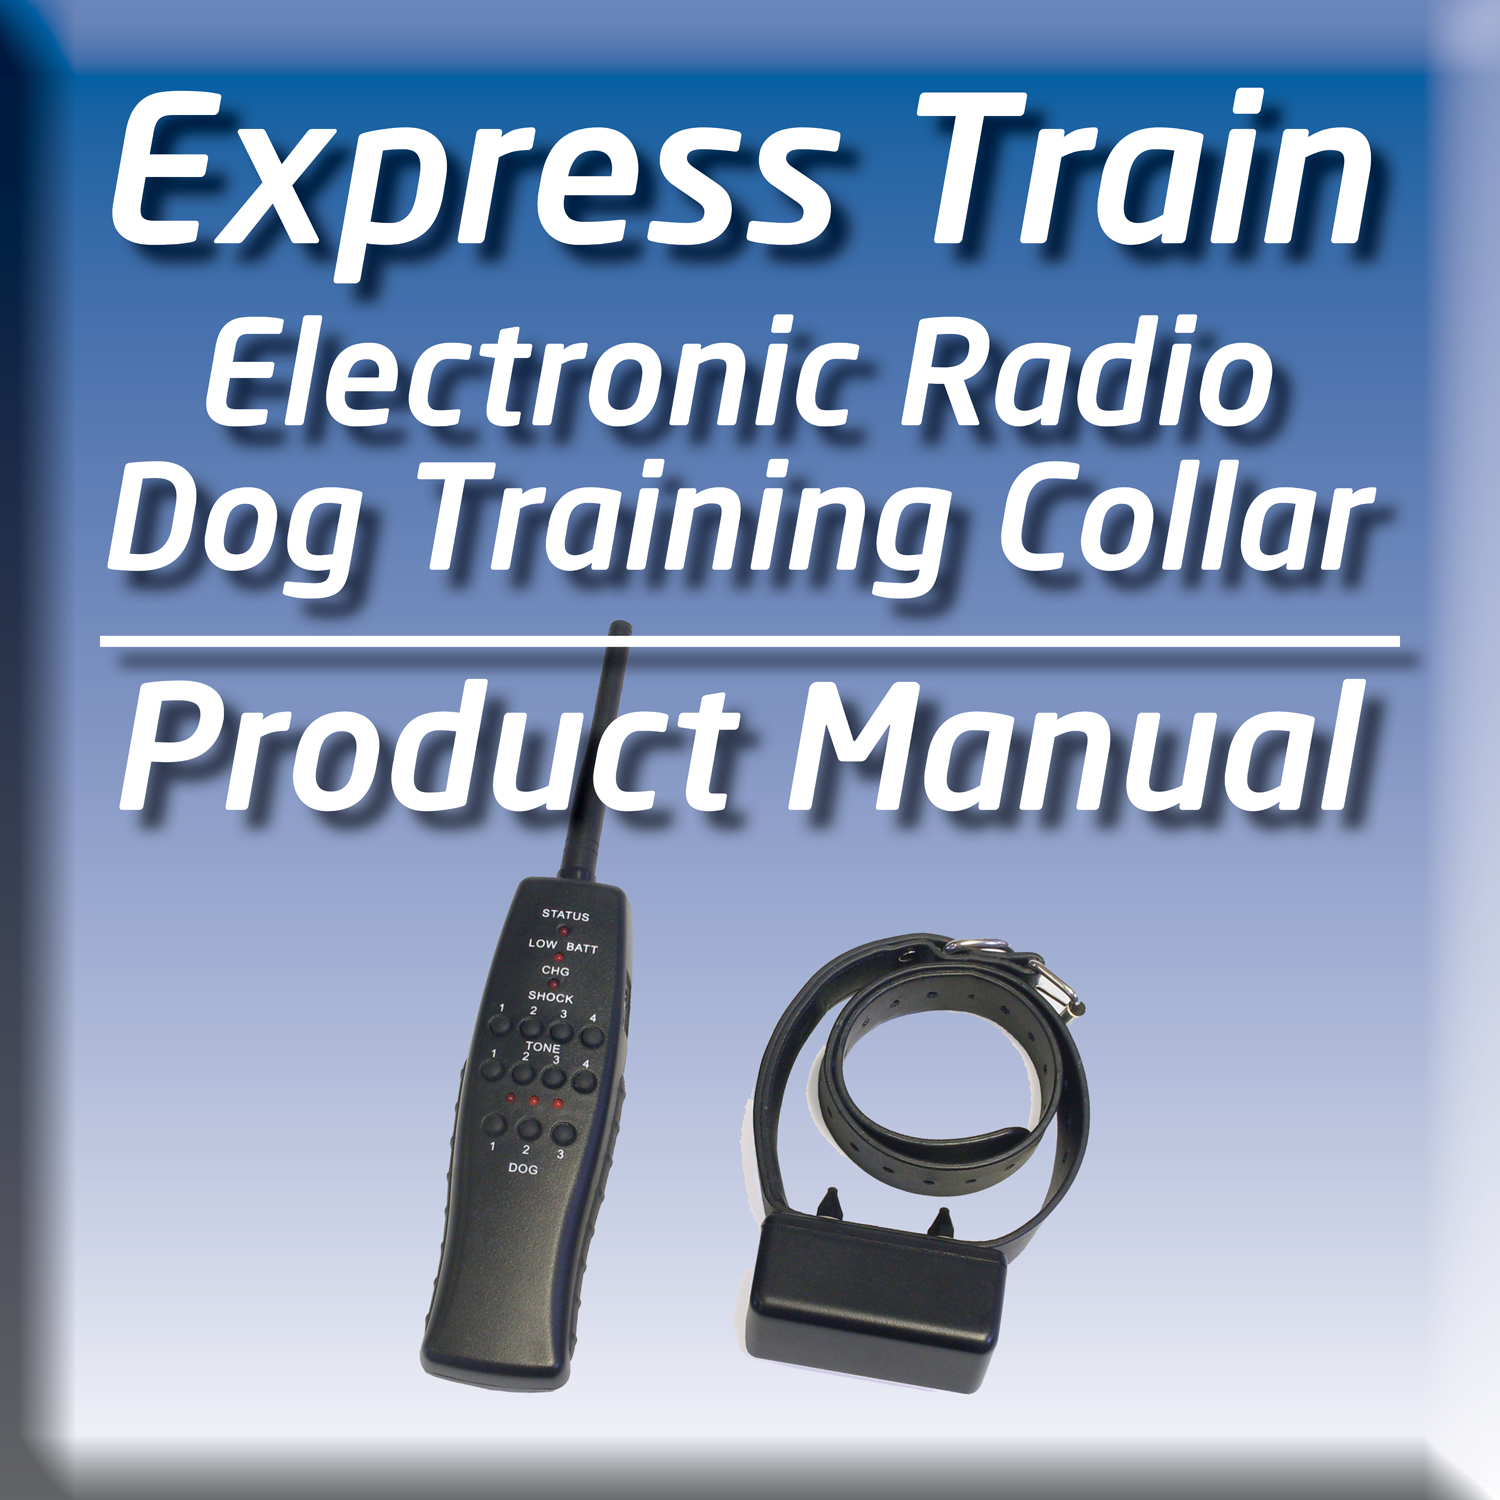 Having trouble? Our electronic pet products manuals are here for you